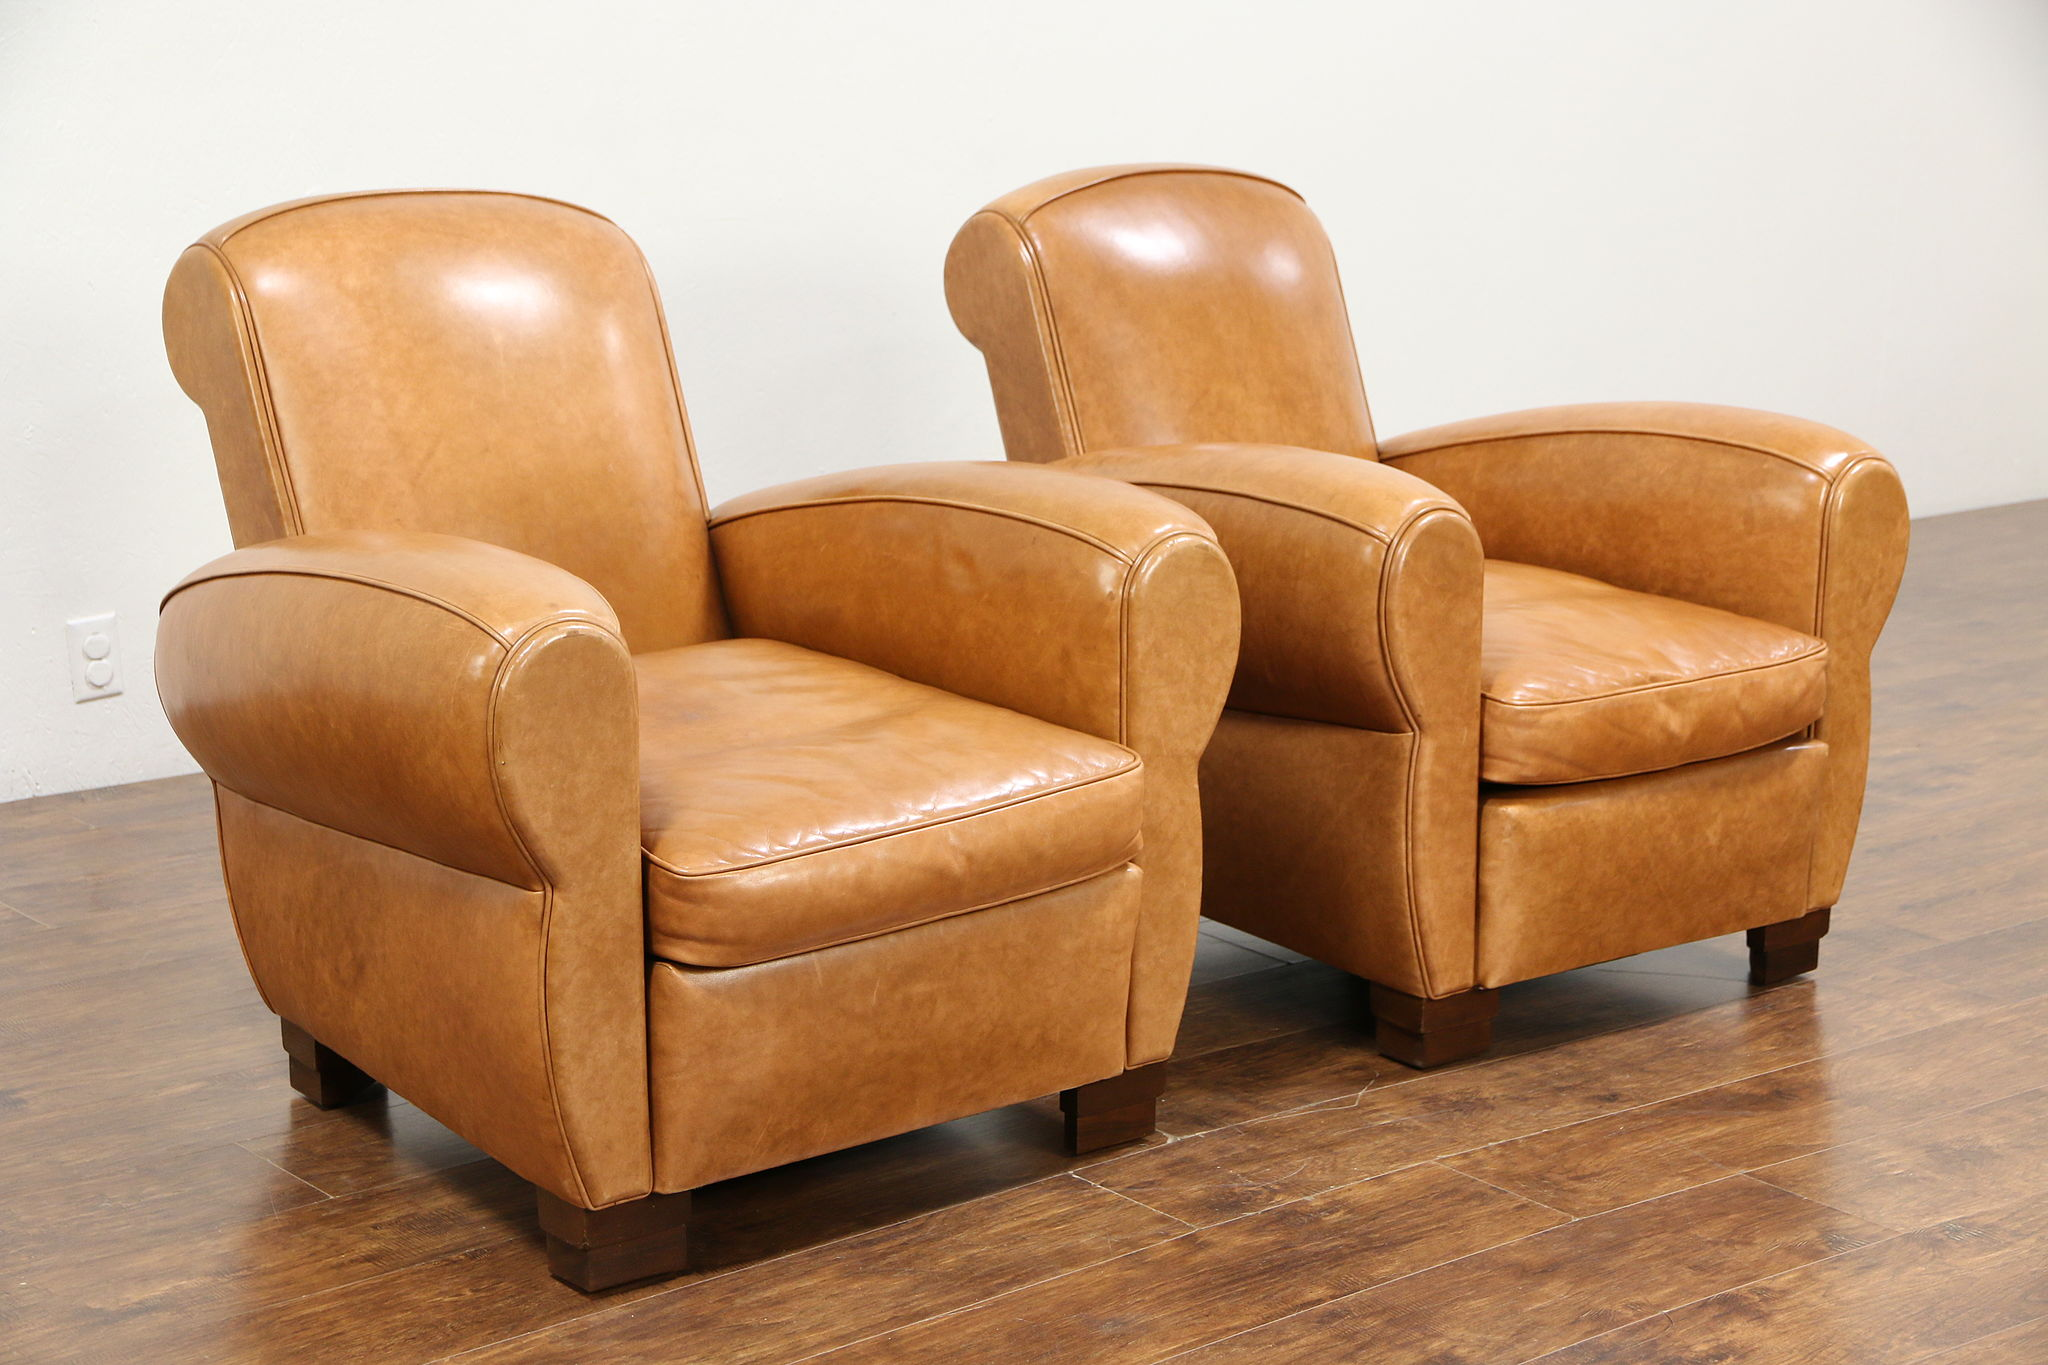 Pair Of Vintage French Art Deco Style Leather Club Chairs